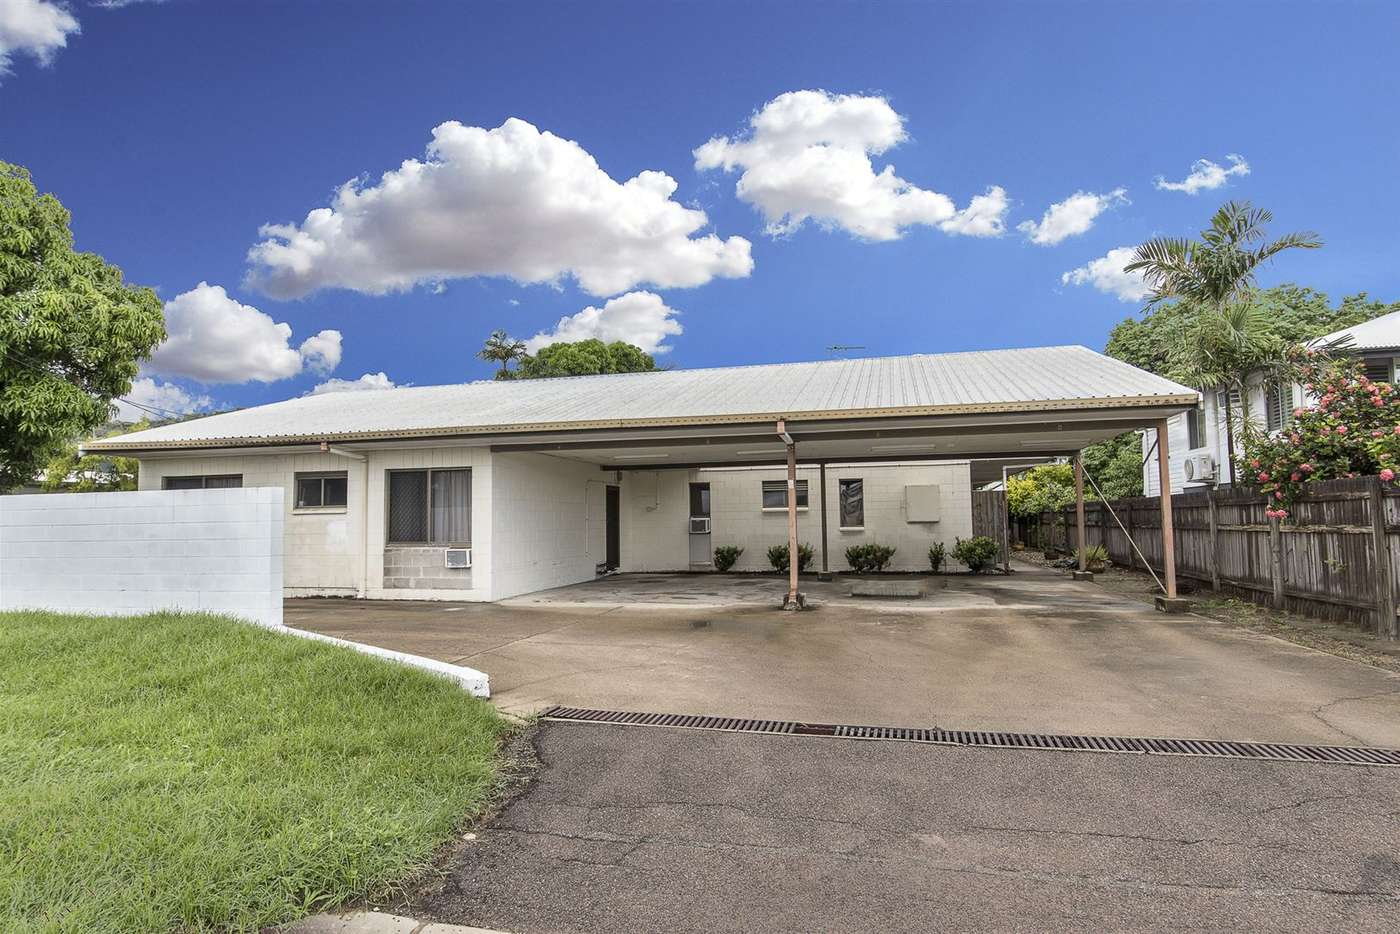 Main view of Homely blockOfUnits listing, 25 Henry Street, West End QLD 4810